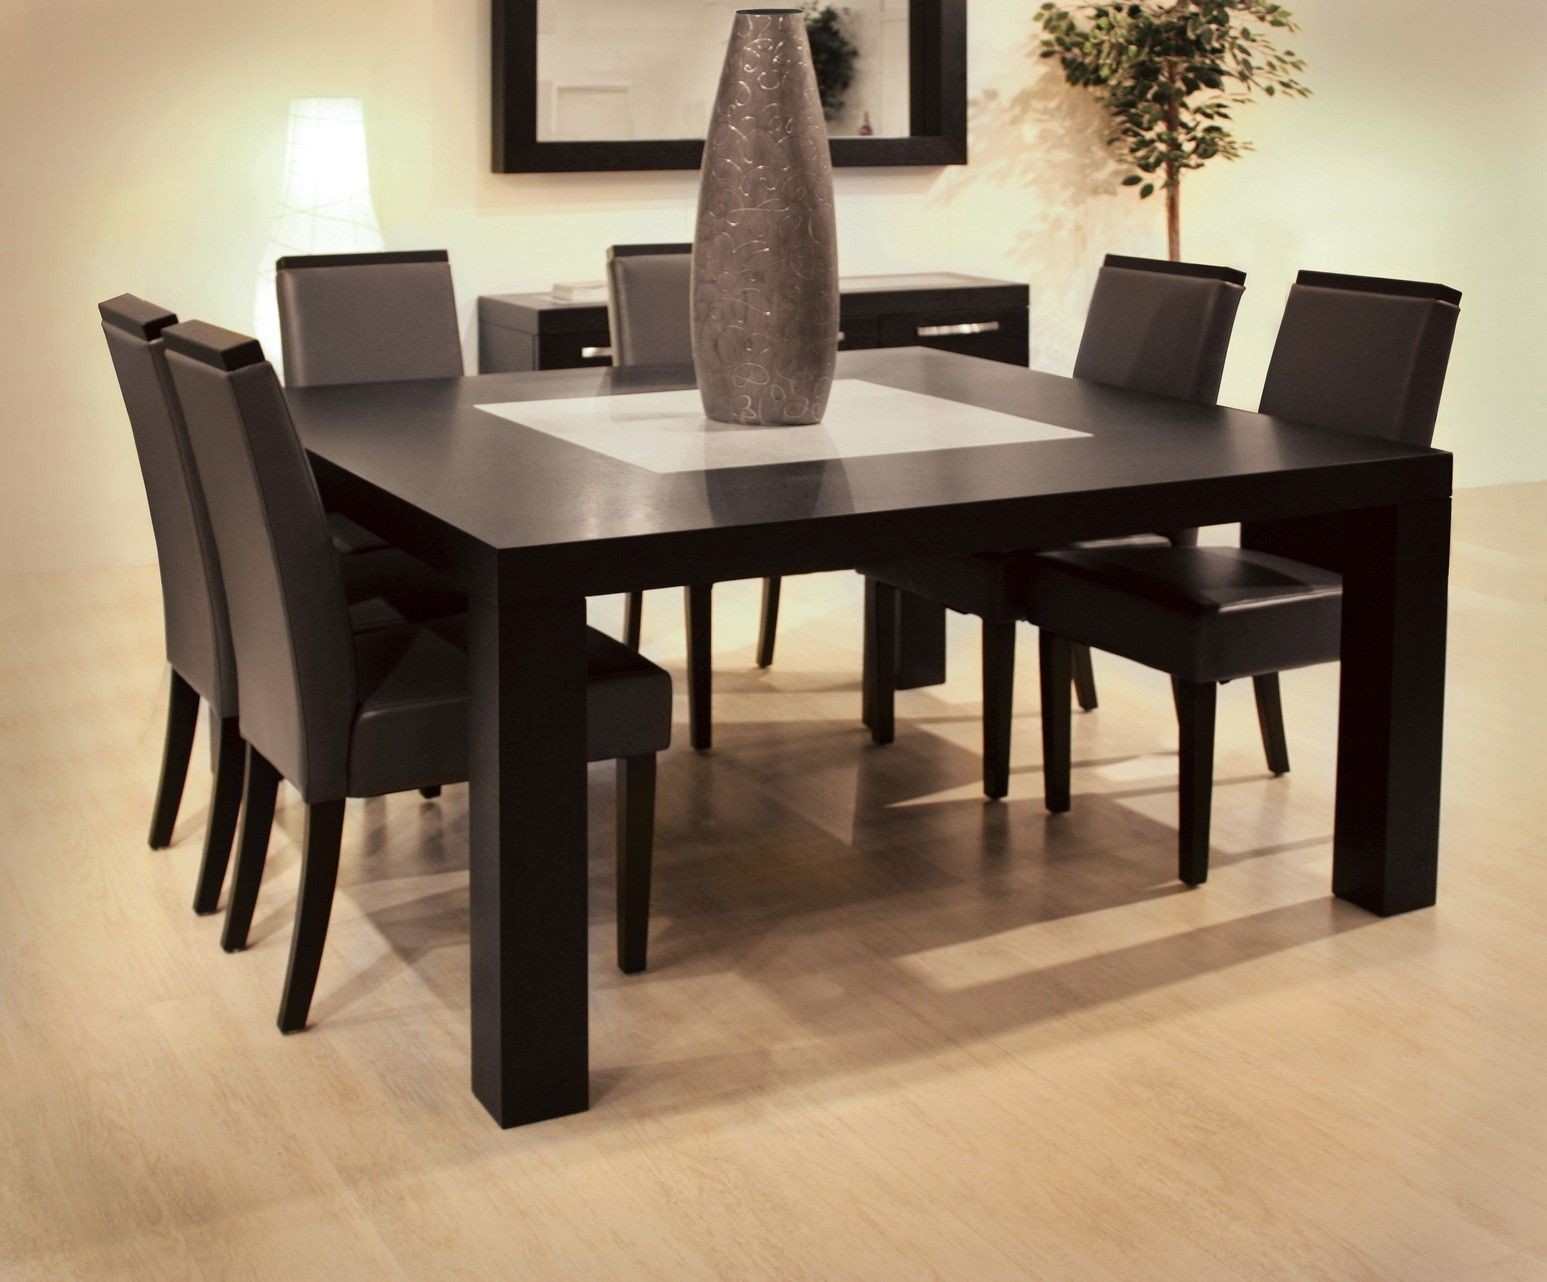 Black Wood Dining Table Set - Dining table sets wood modern